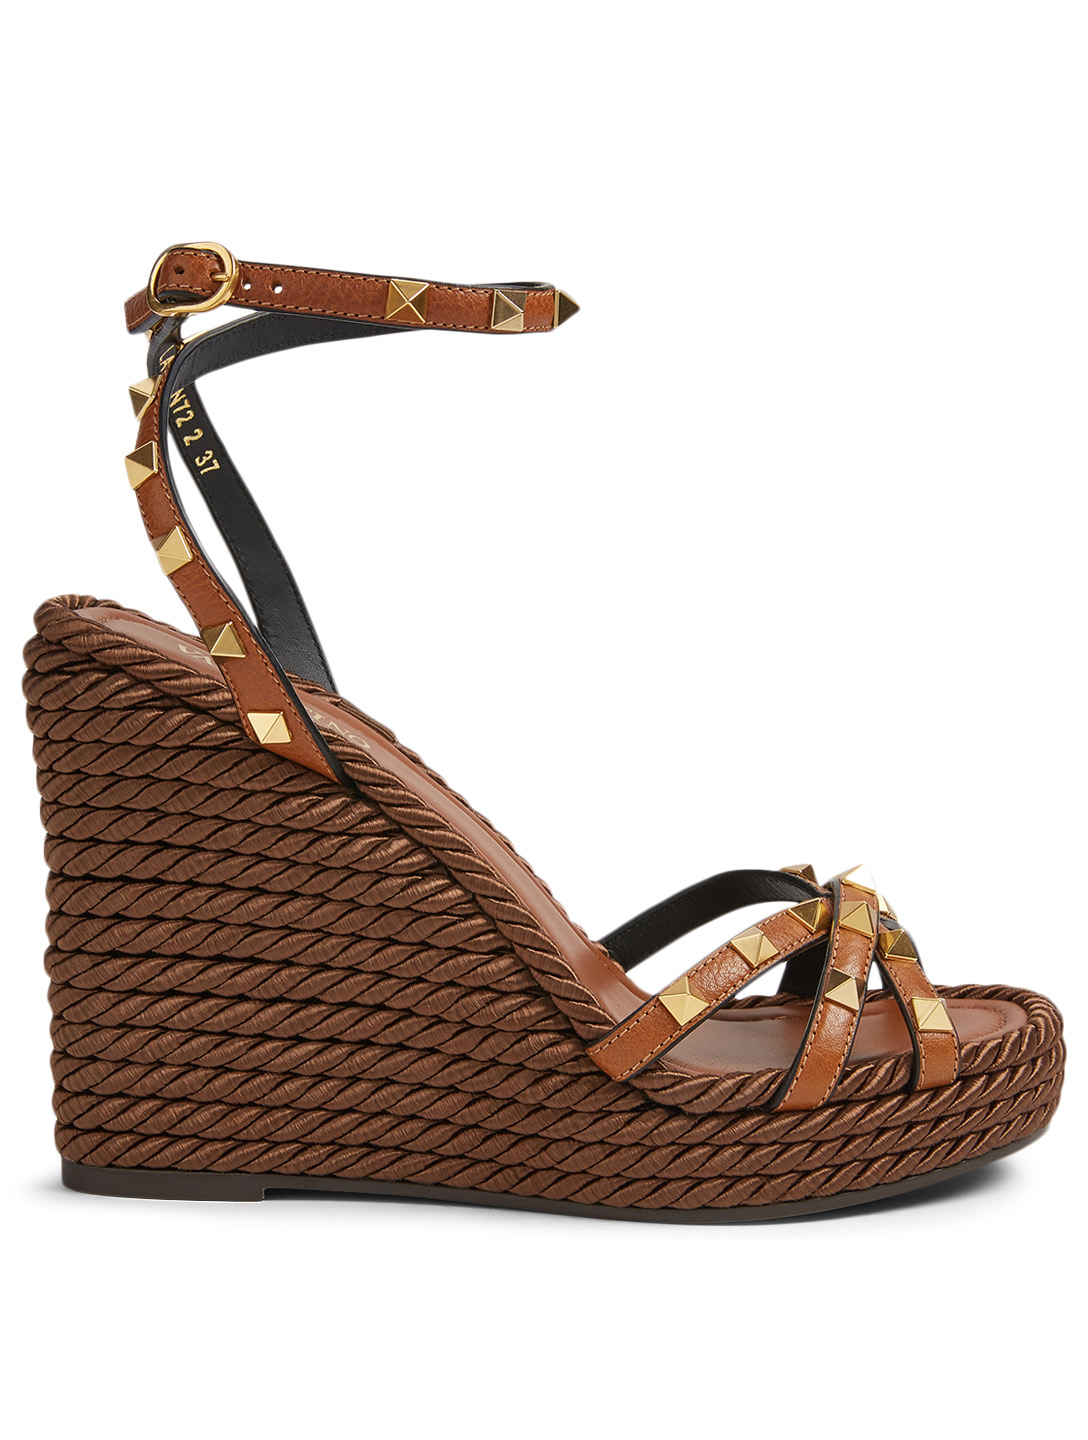 02513349436 VALENTINO GARAVANI Rockstud Torchon Leather Wedge Sandals | Holt Renfrew